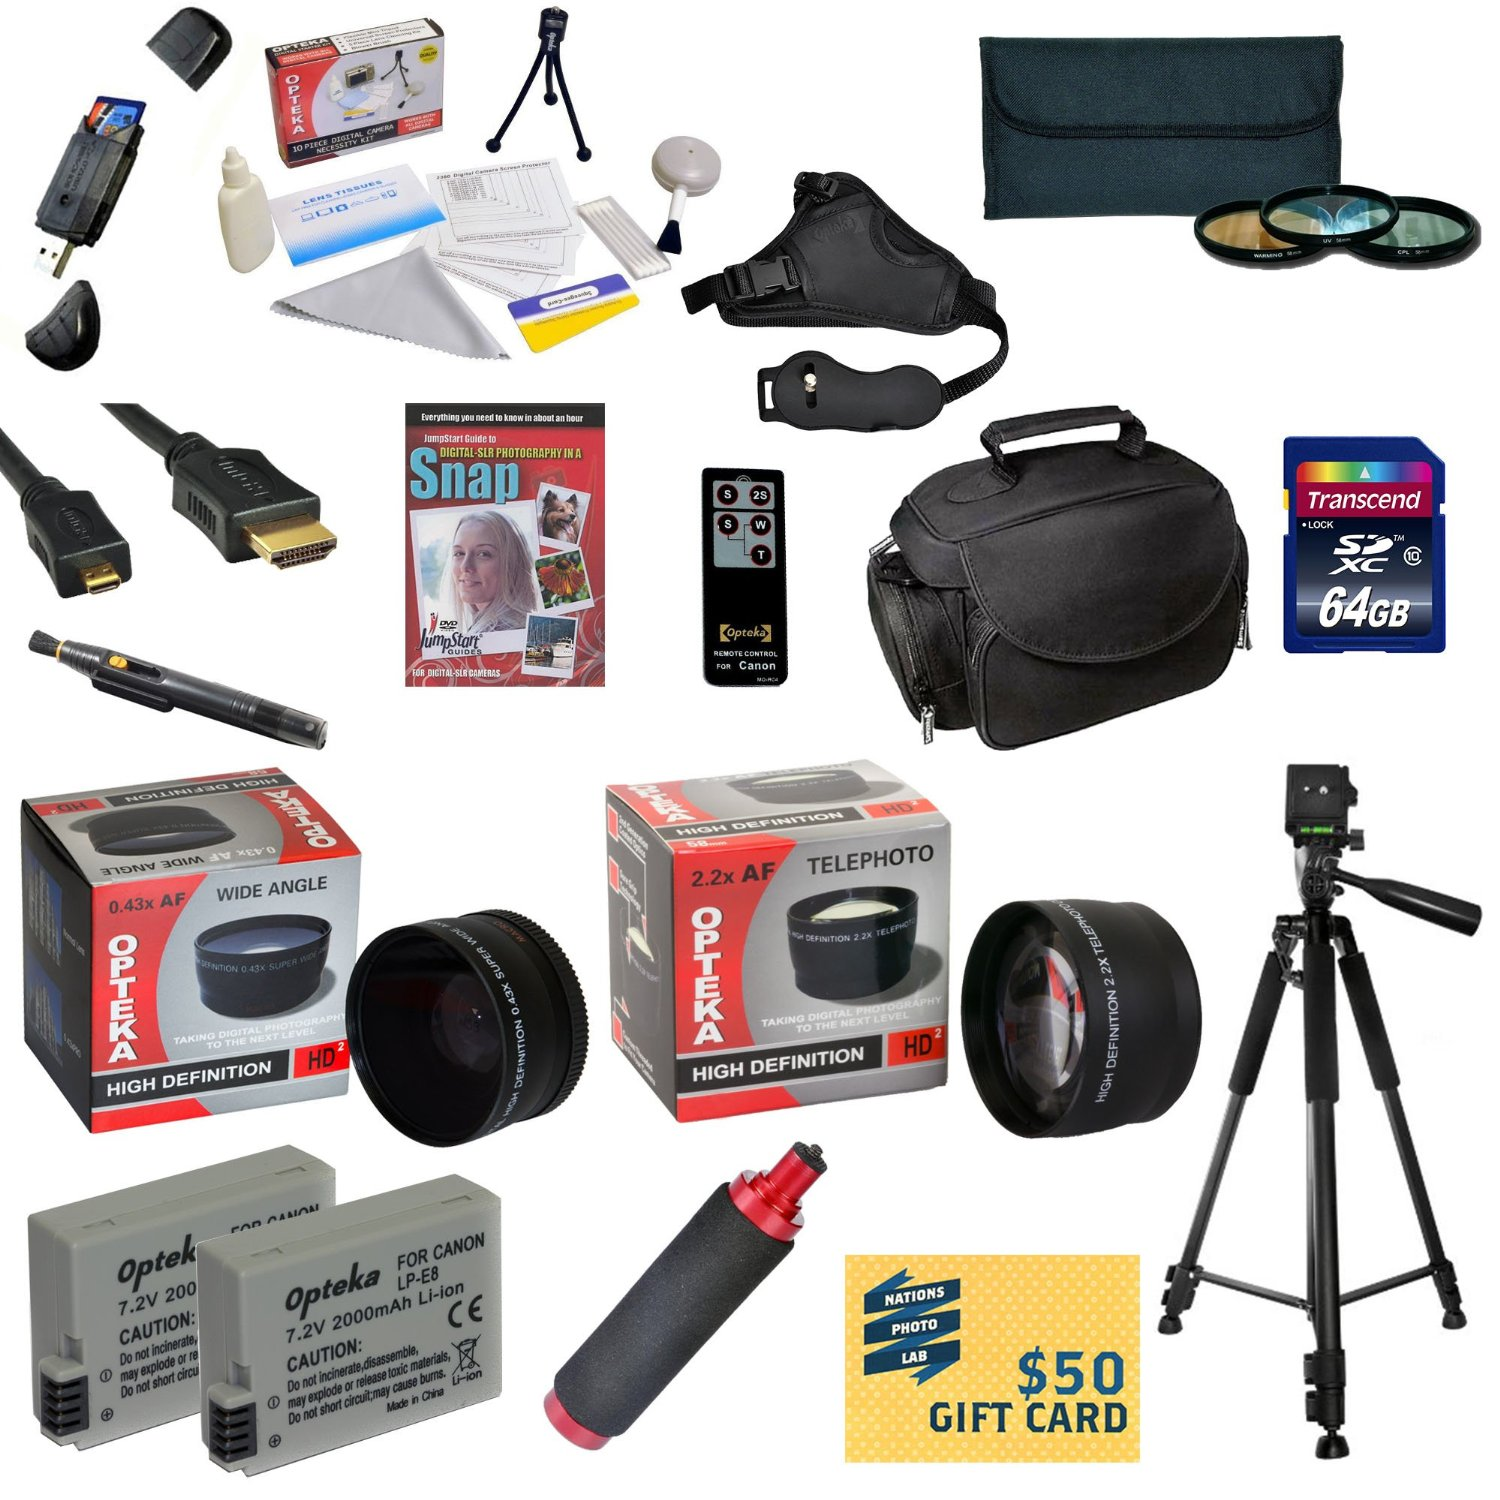 Ultimate Kit for Canon Rebel T2i T3i T4i T5i DSLR Camera Includes 64GB SDXC Card + 2 Batteries + Charger + 0.43x + 2.2x Lens + 3 Piece Filters + Gadget Bag +Tripod + DSLR DVD + $50 Gift Card + More